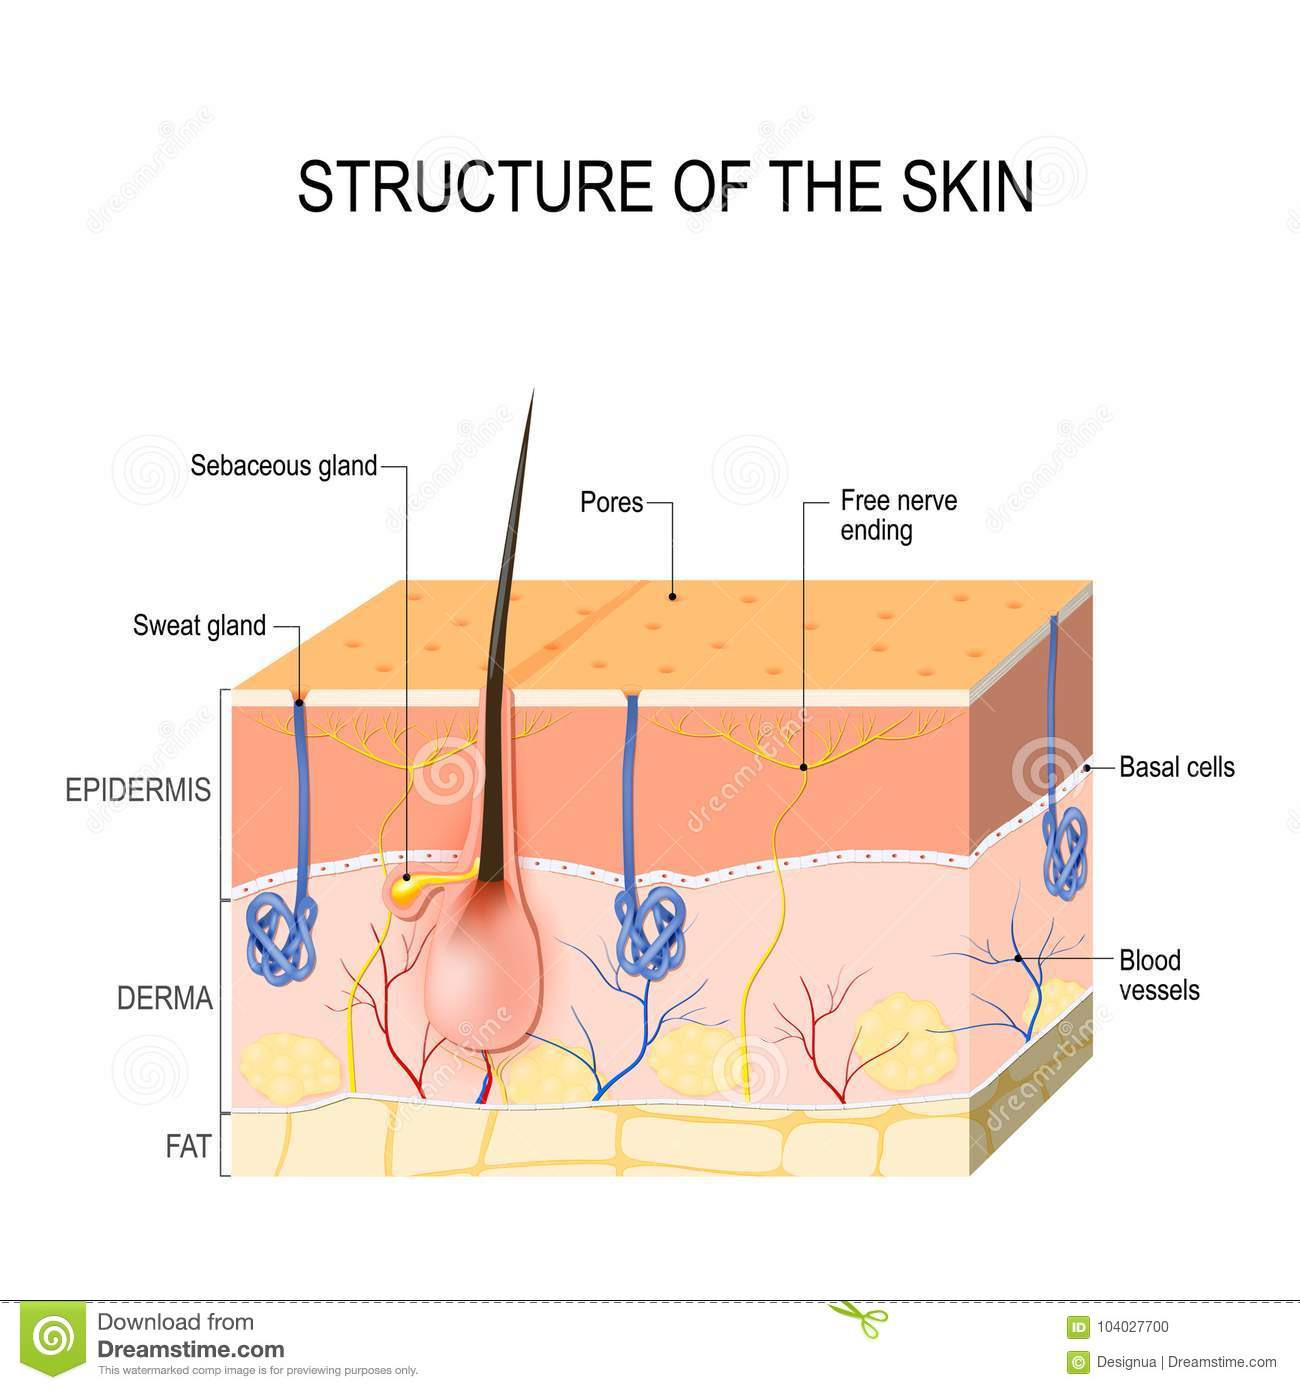 hight resolution of structure of the skin skin layers with blood vessel free nerve ending pores and glands sebaceous and sweat glands human anatomy